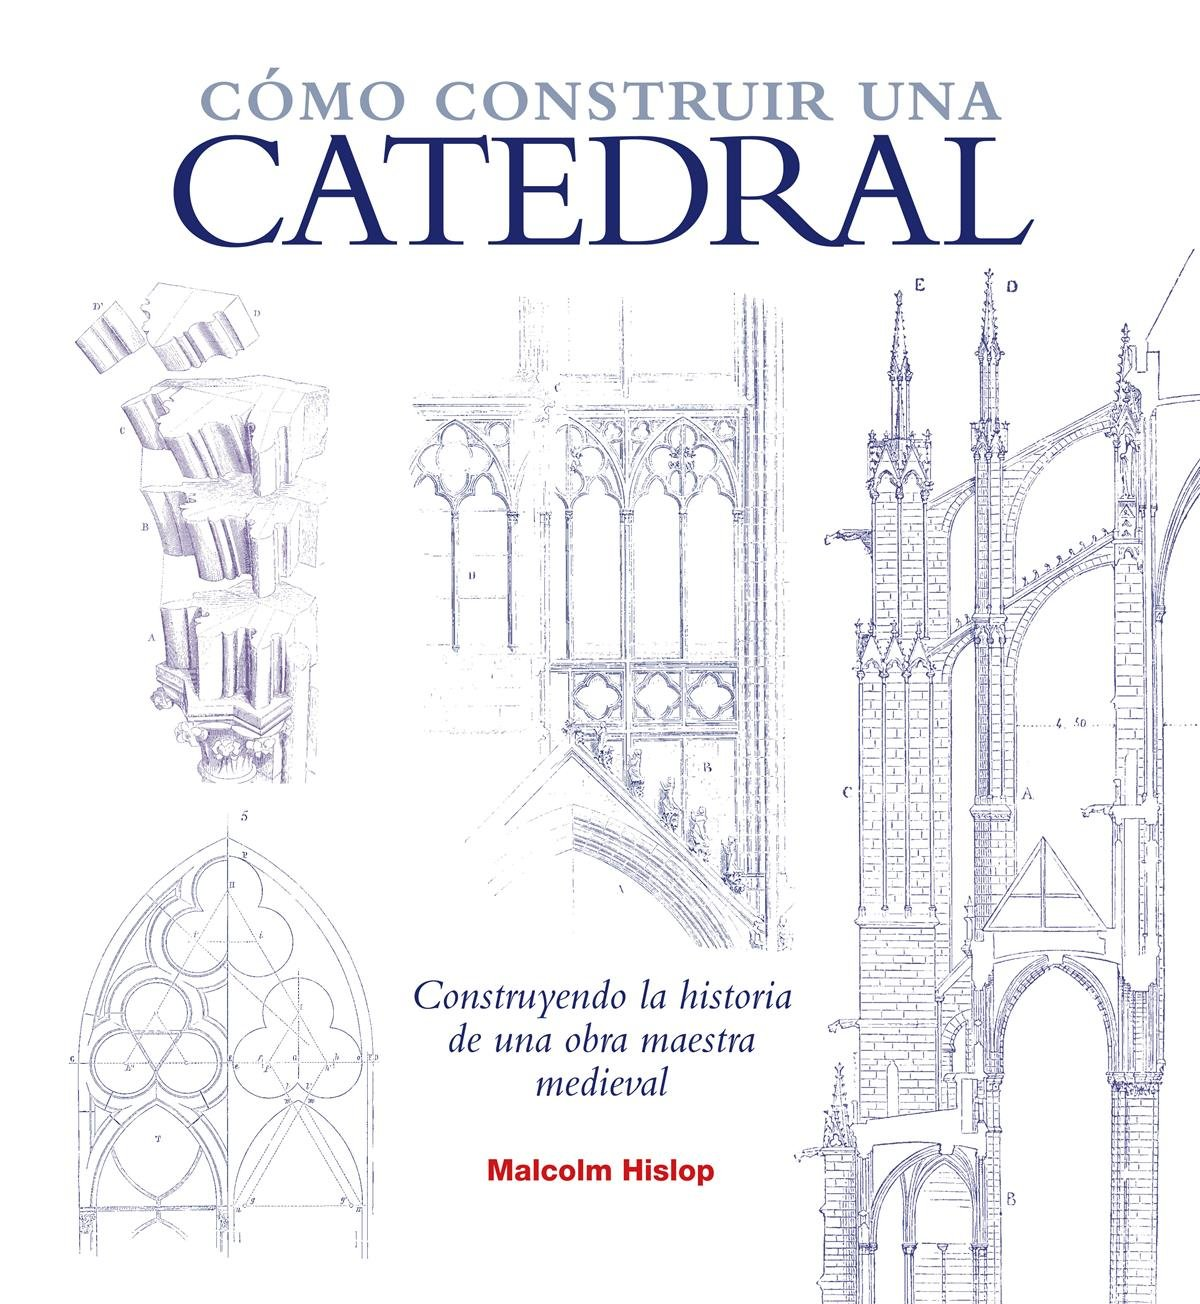 Cómo construir una catedral: MALCOLM HISLOP: 9788446038474: Amazon.com: Books